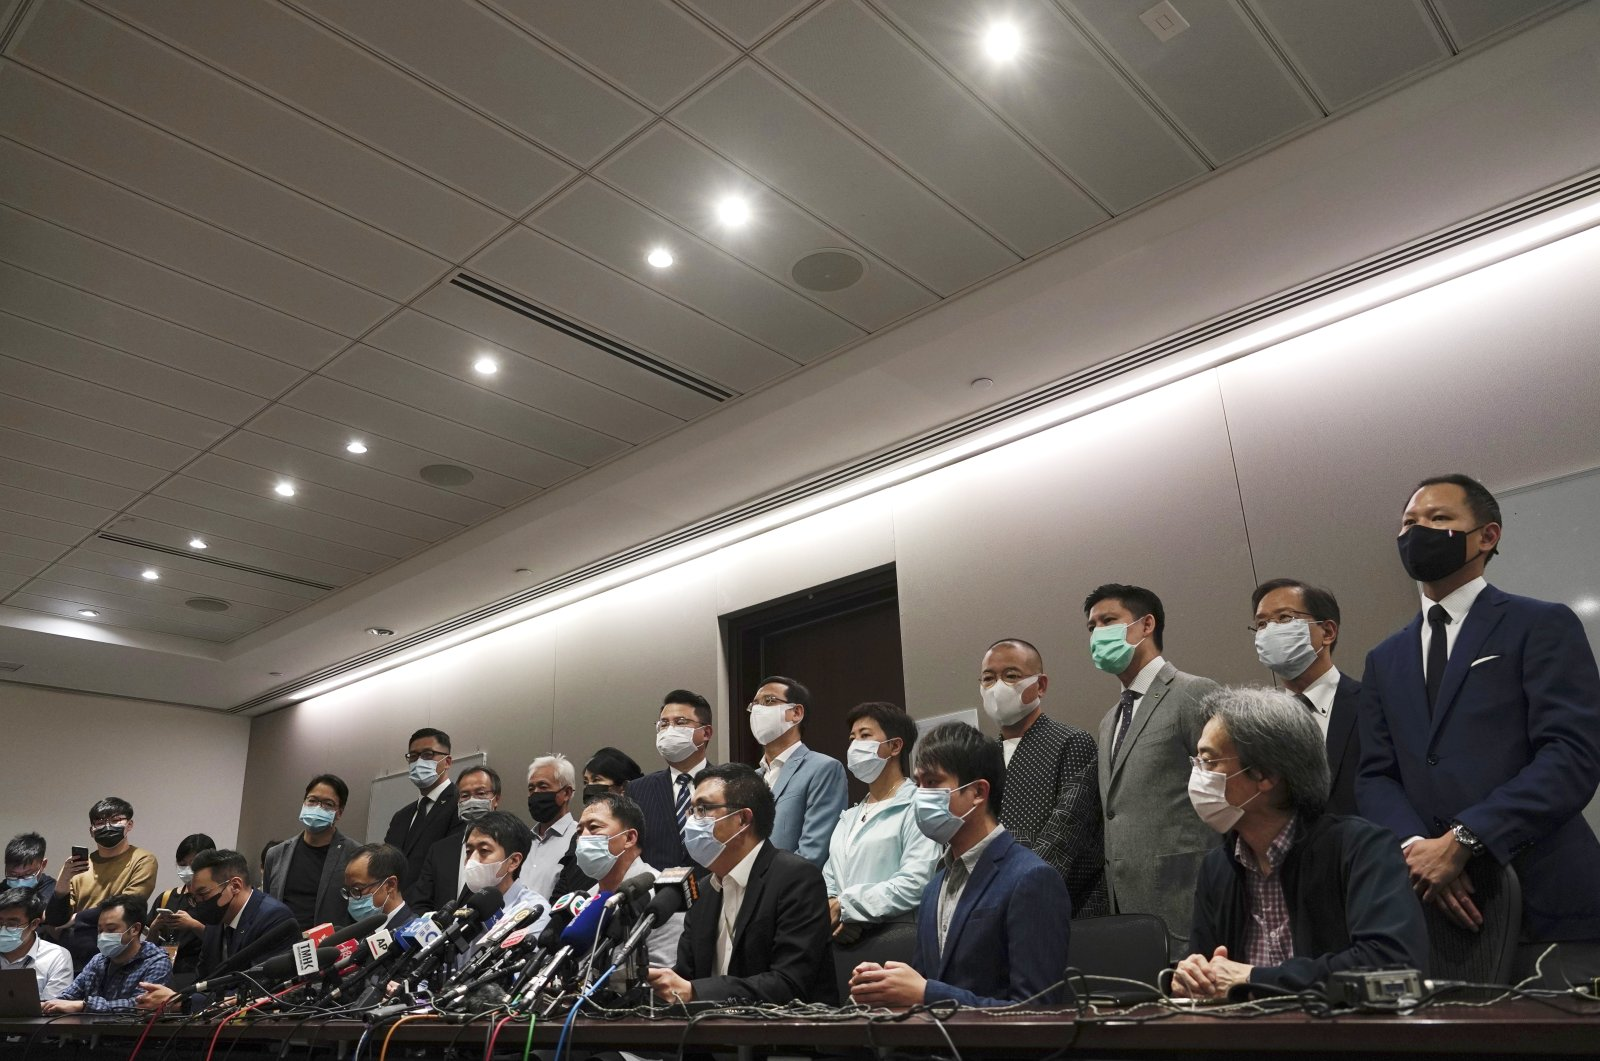 Hong Kong's pro-democracy legislators speak during a press conference at the Legislative Council in Hong Kong, Nov. 11, 2020. (AP Photo)